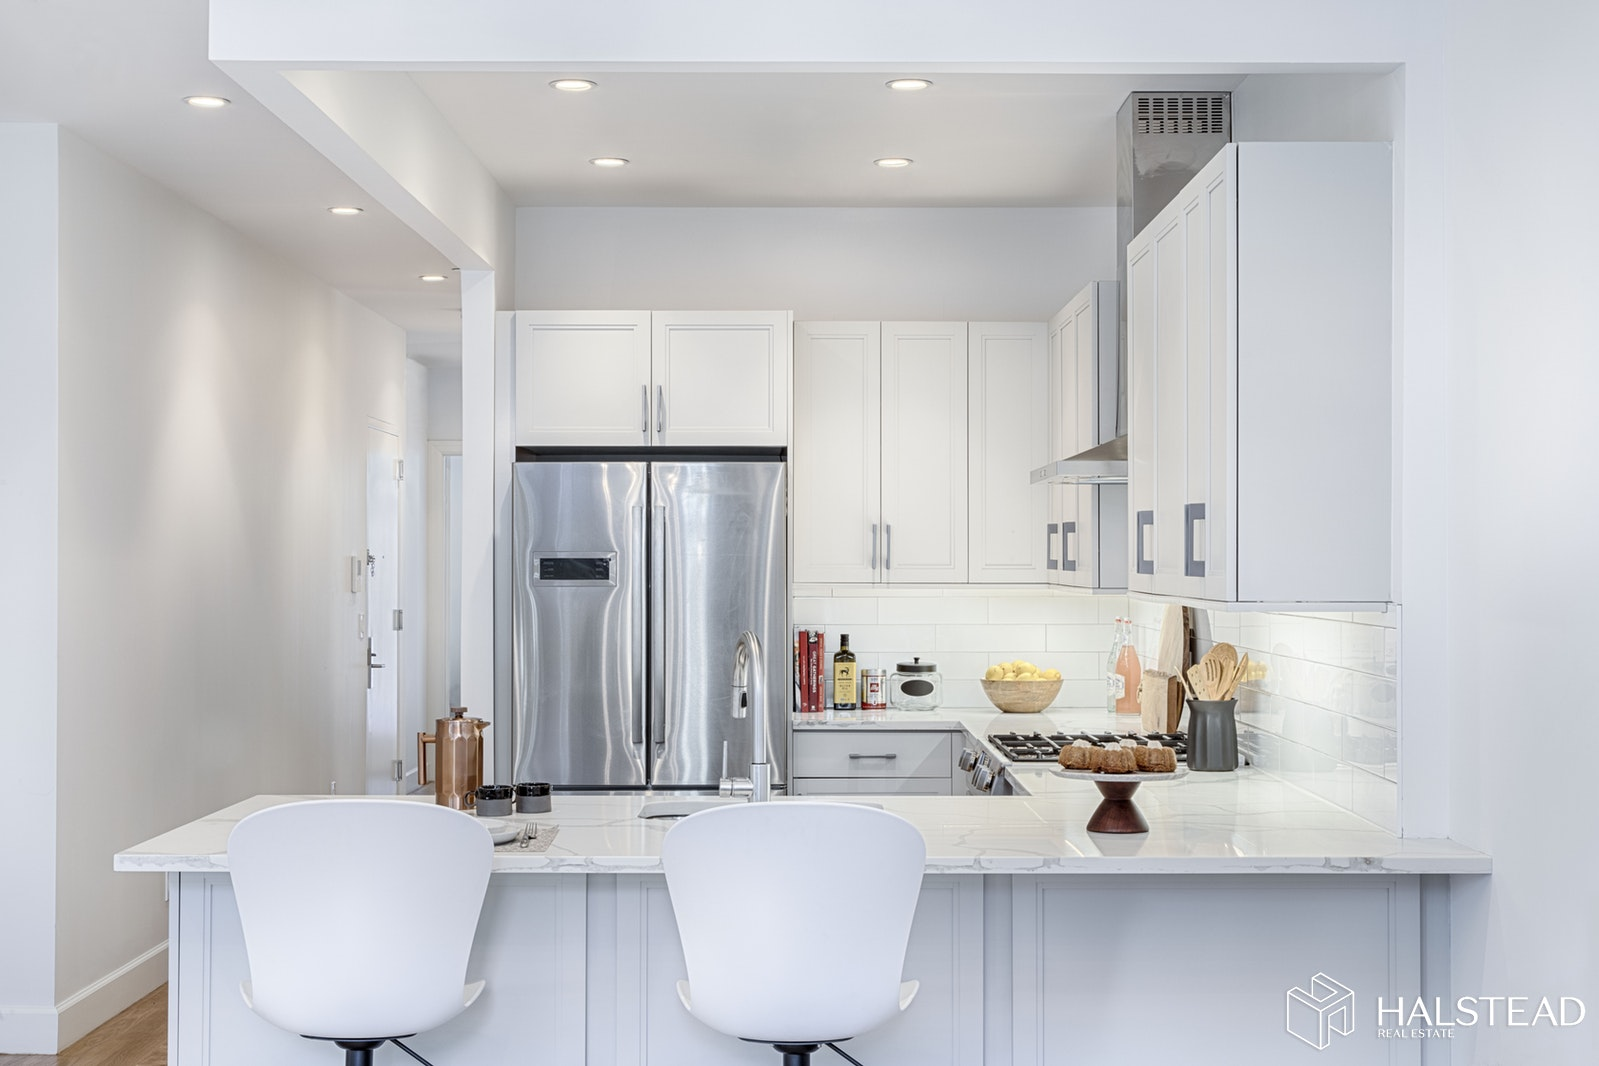 755 Bergen St 1, Crown Heights, Brooklyn, NY, 11238, $1,495,000, Property For Sale, Halstead Real Estate, Photo 3